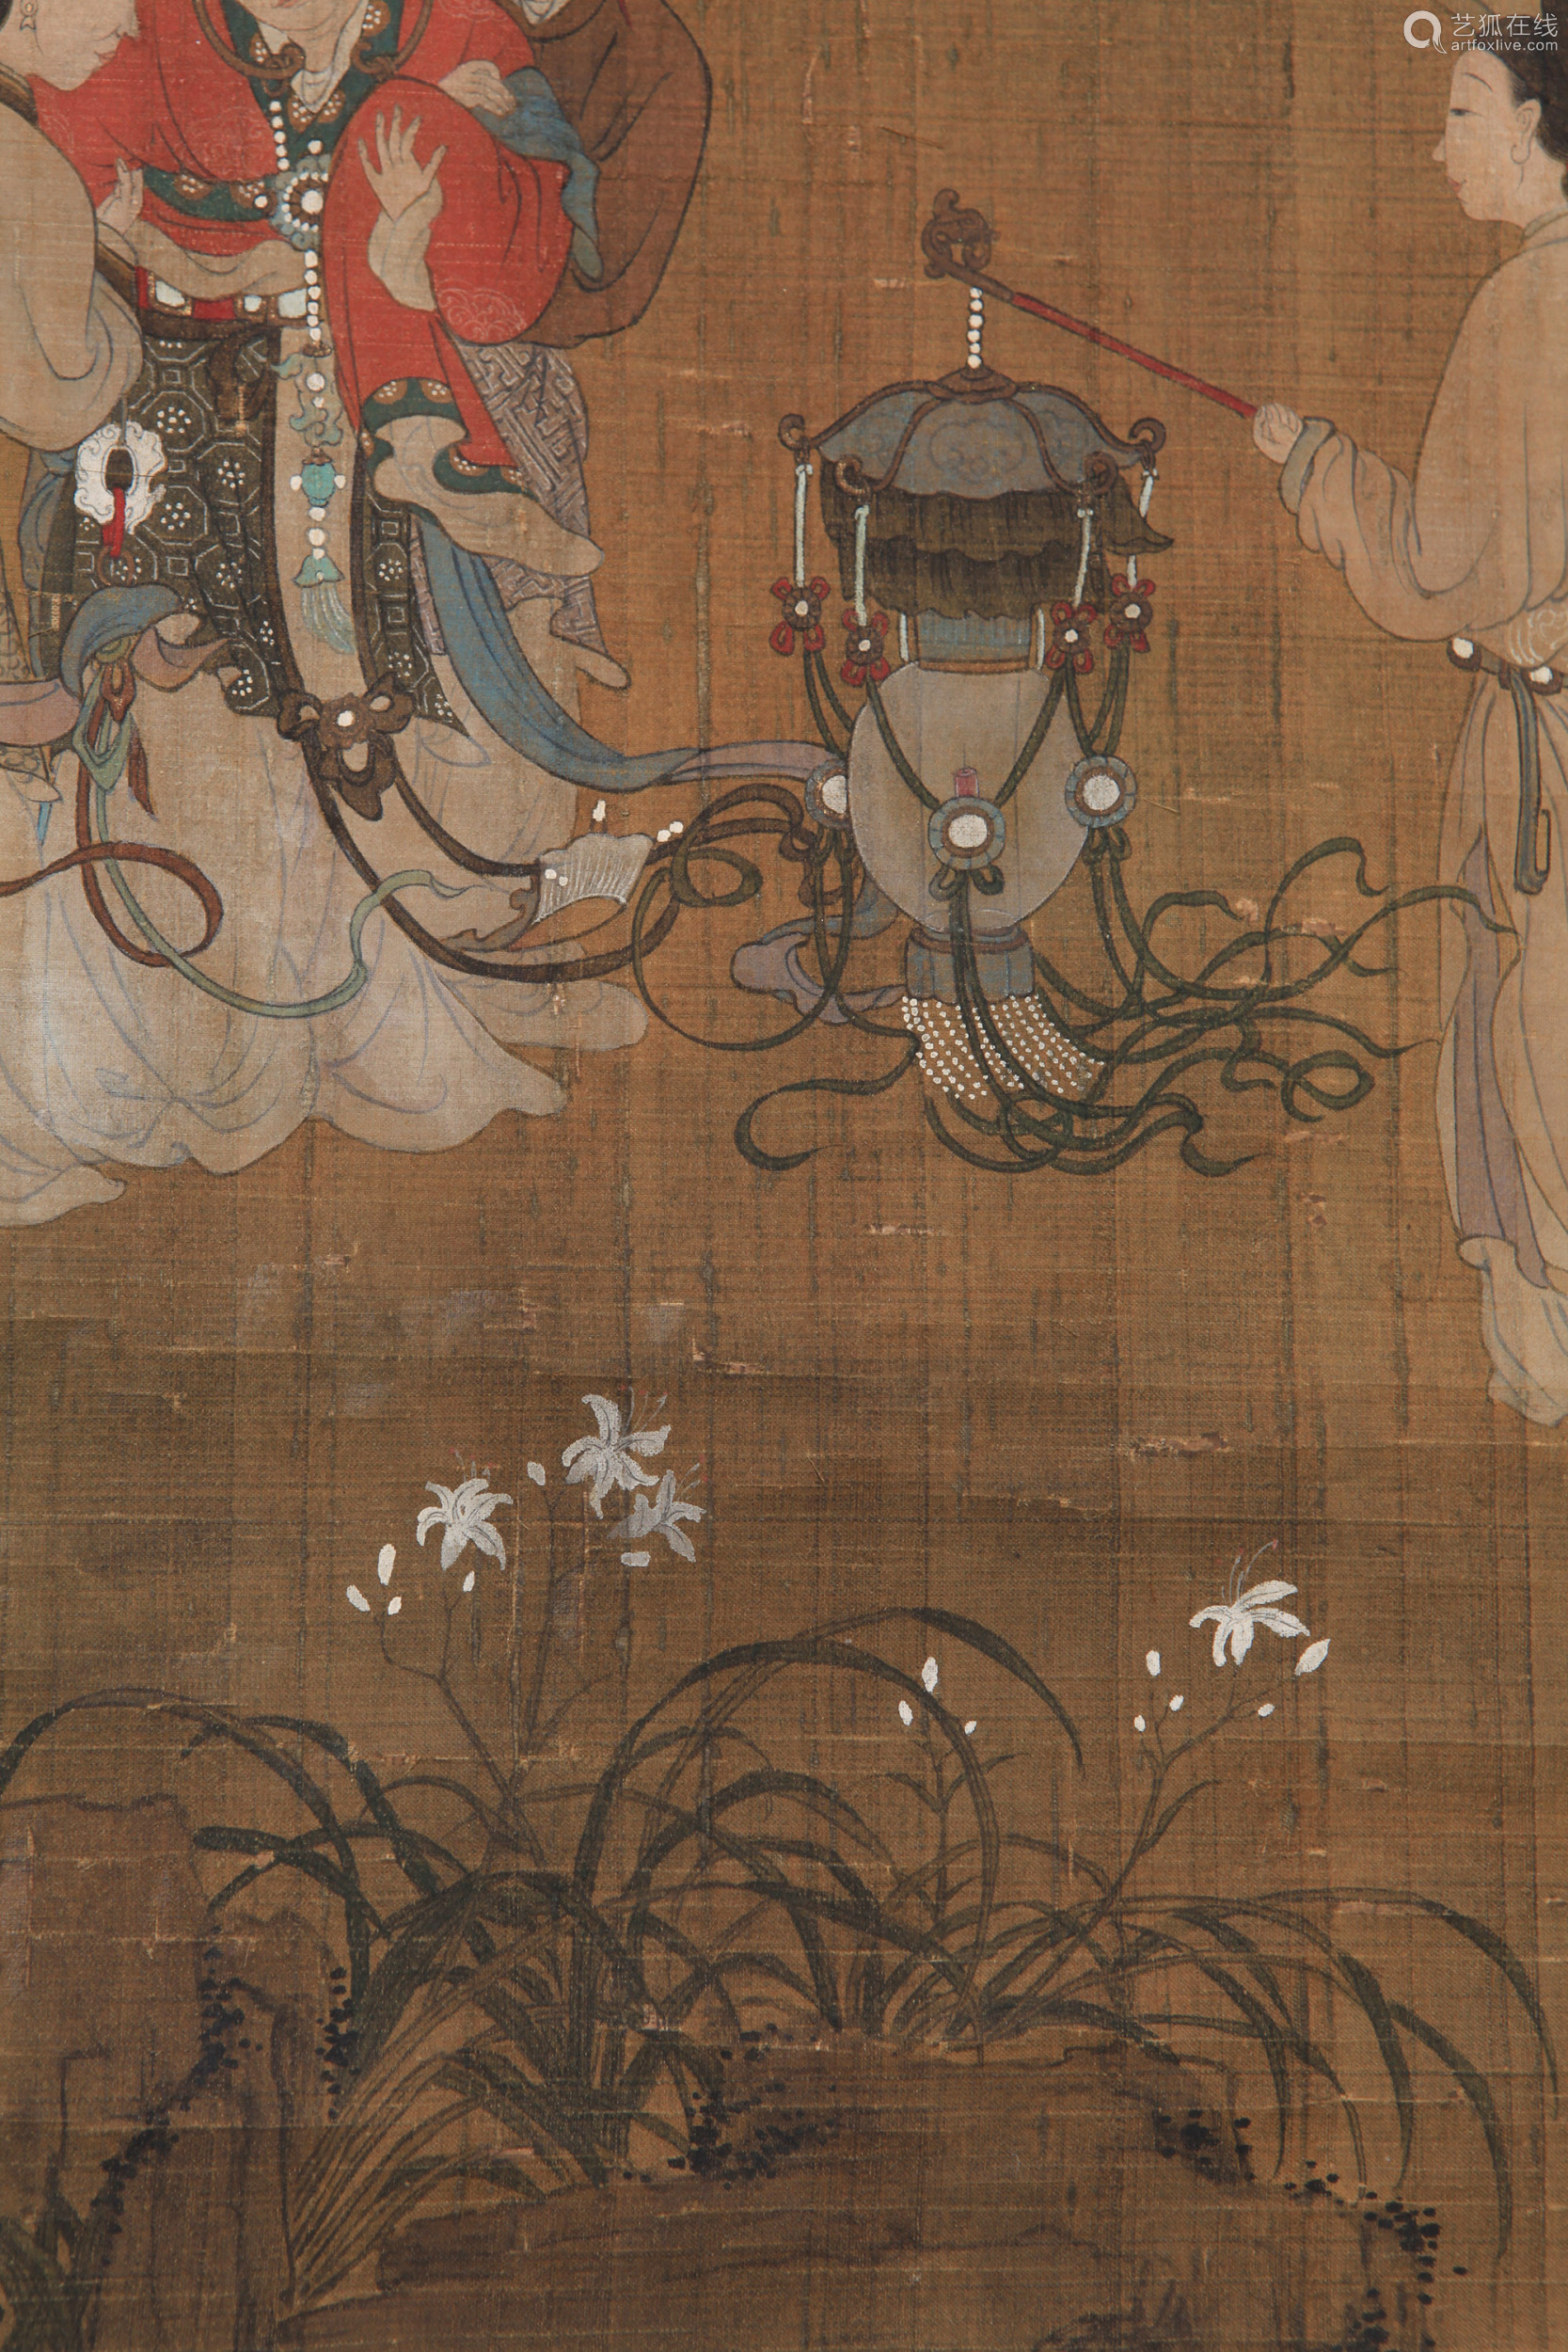 You Qiu - Painting of Figures in Chinese Pavilion